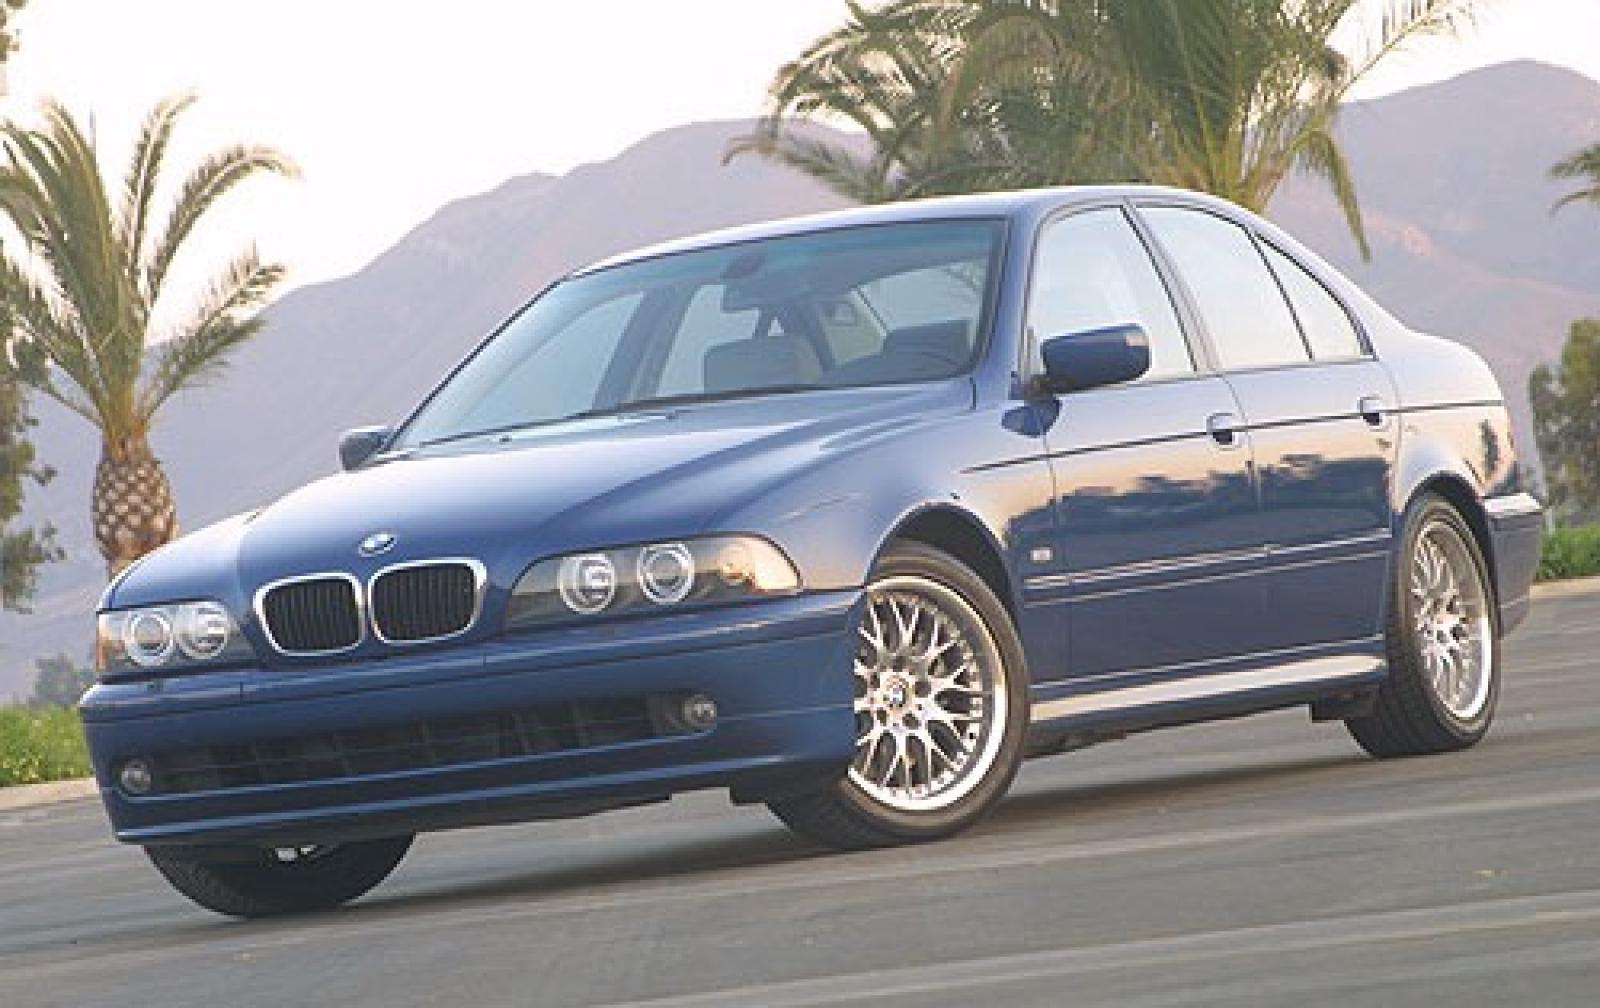 BMW Series Information And Photos ZombieDrive - 2 door bmw 5 series